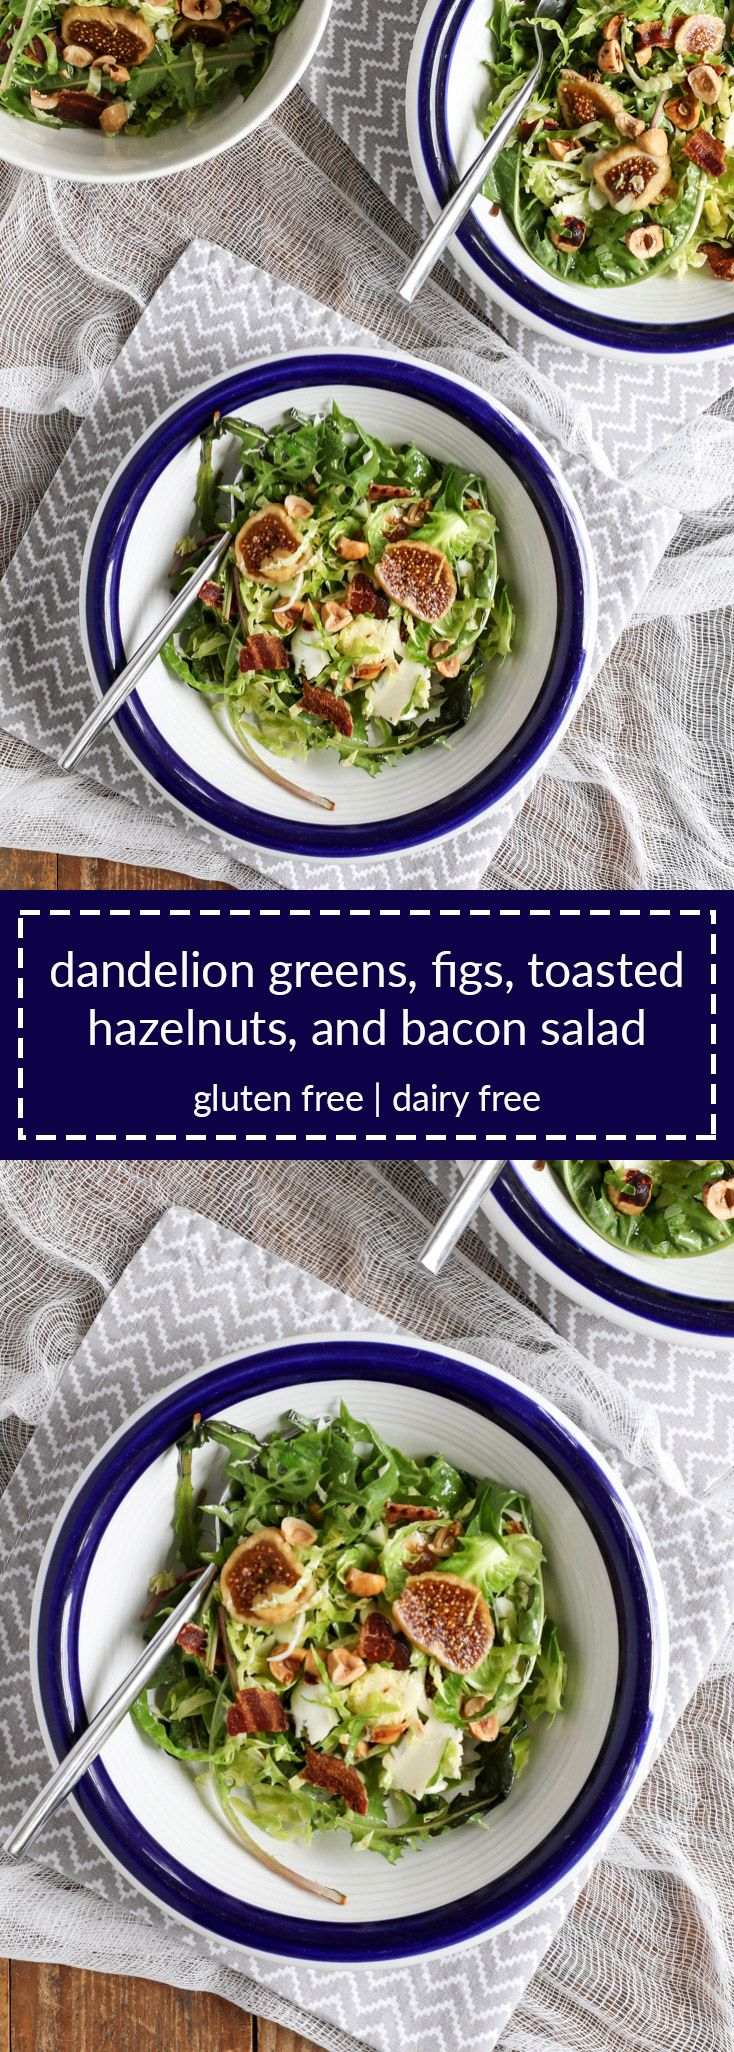 dandelion greens, figs, toasted hazelnuts, and bacon salad is a delicious way to use weeds from your yard (or farmers' market). gluten/dairy free.